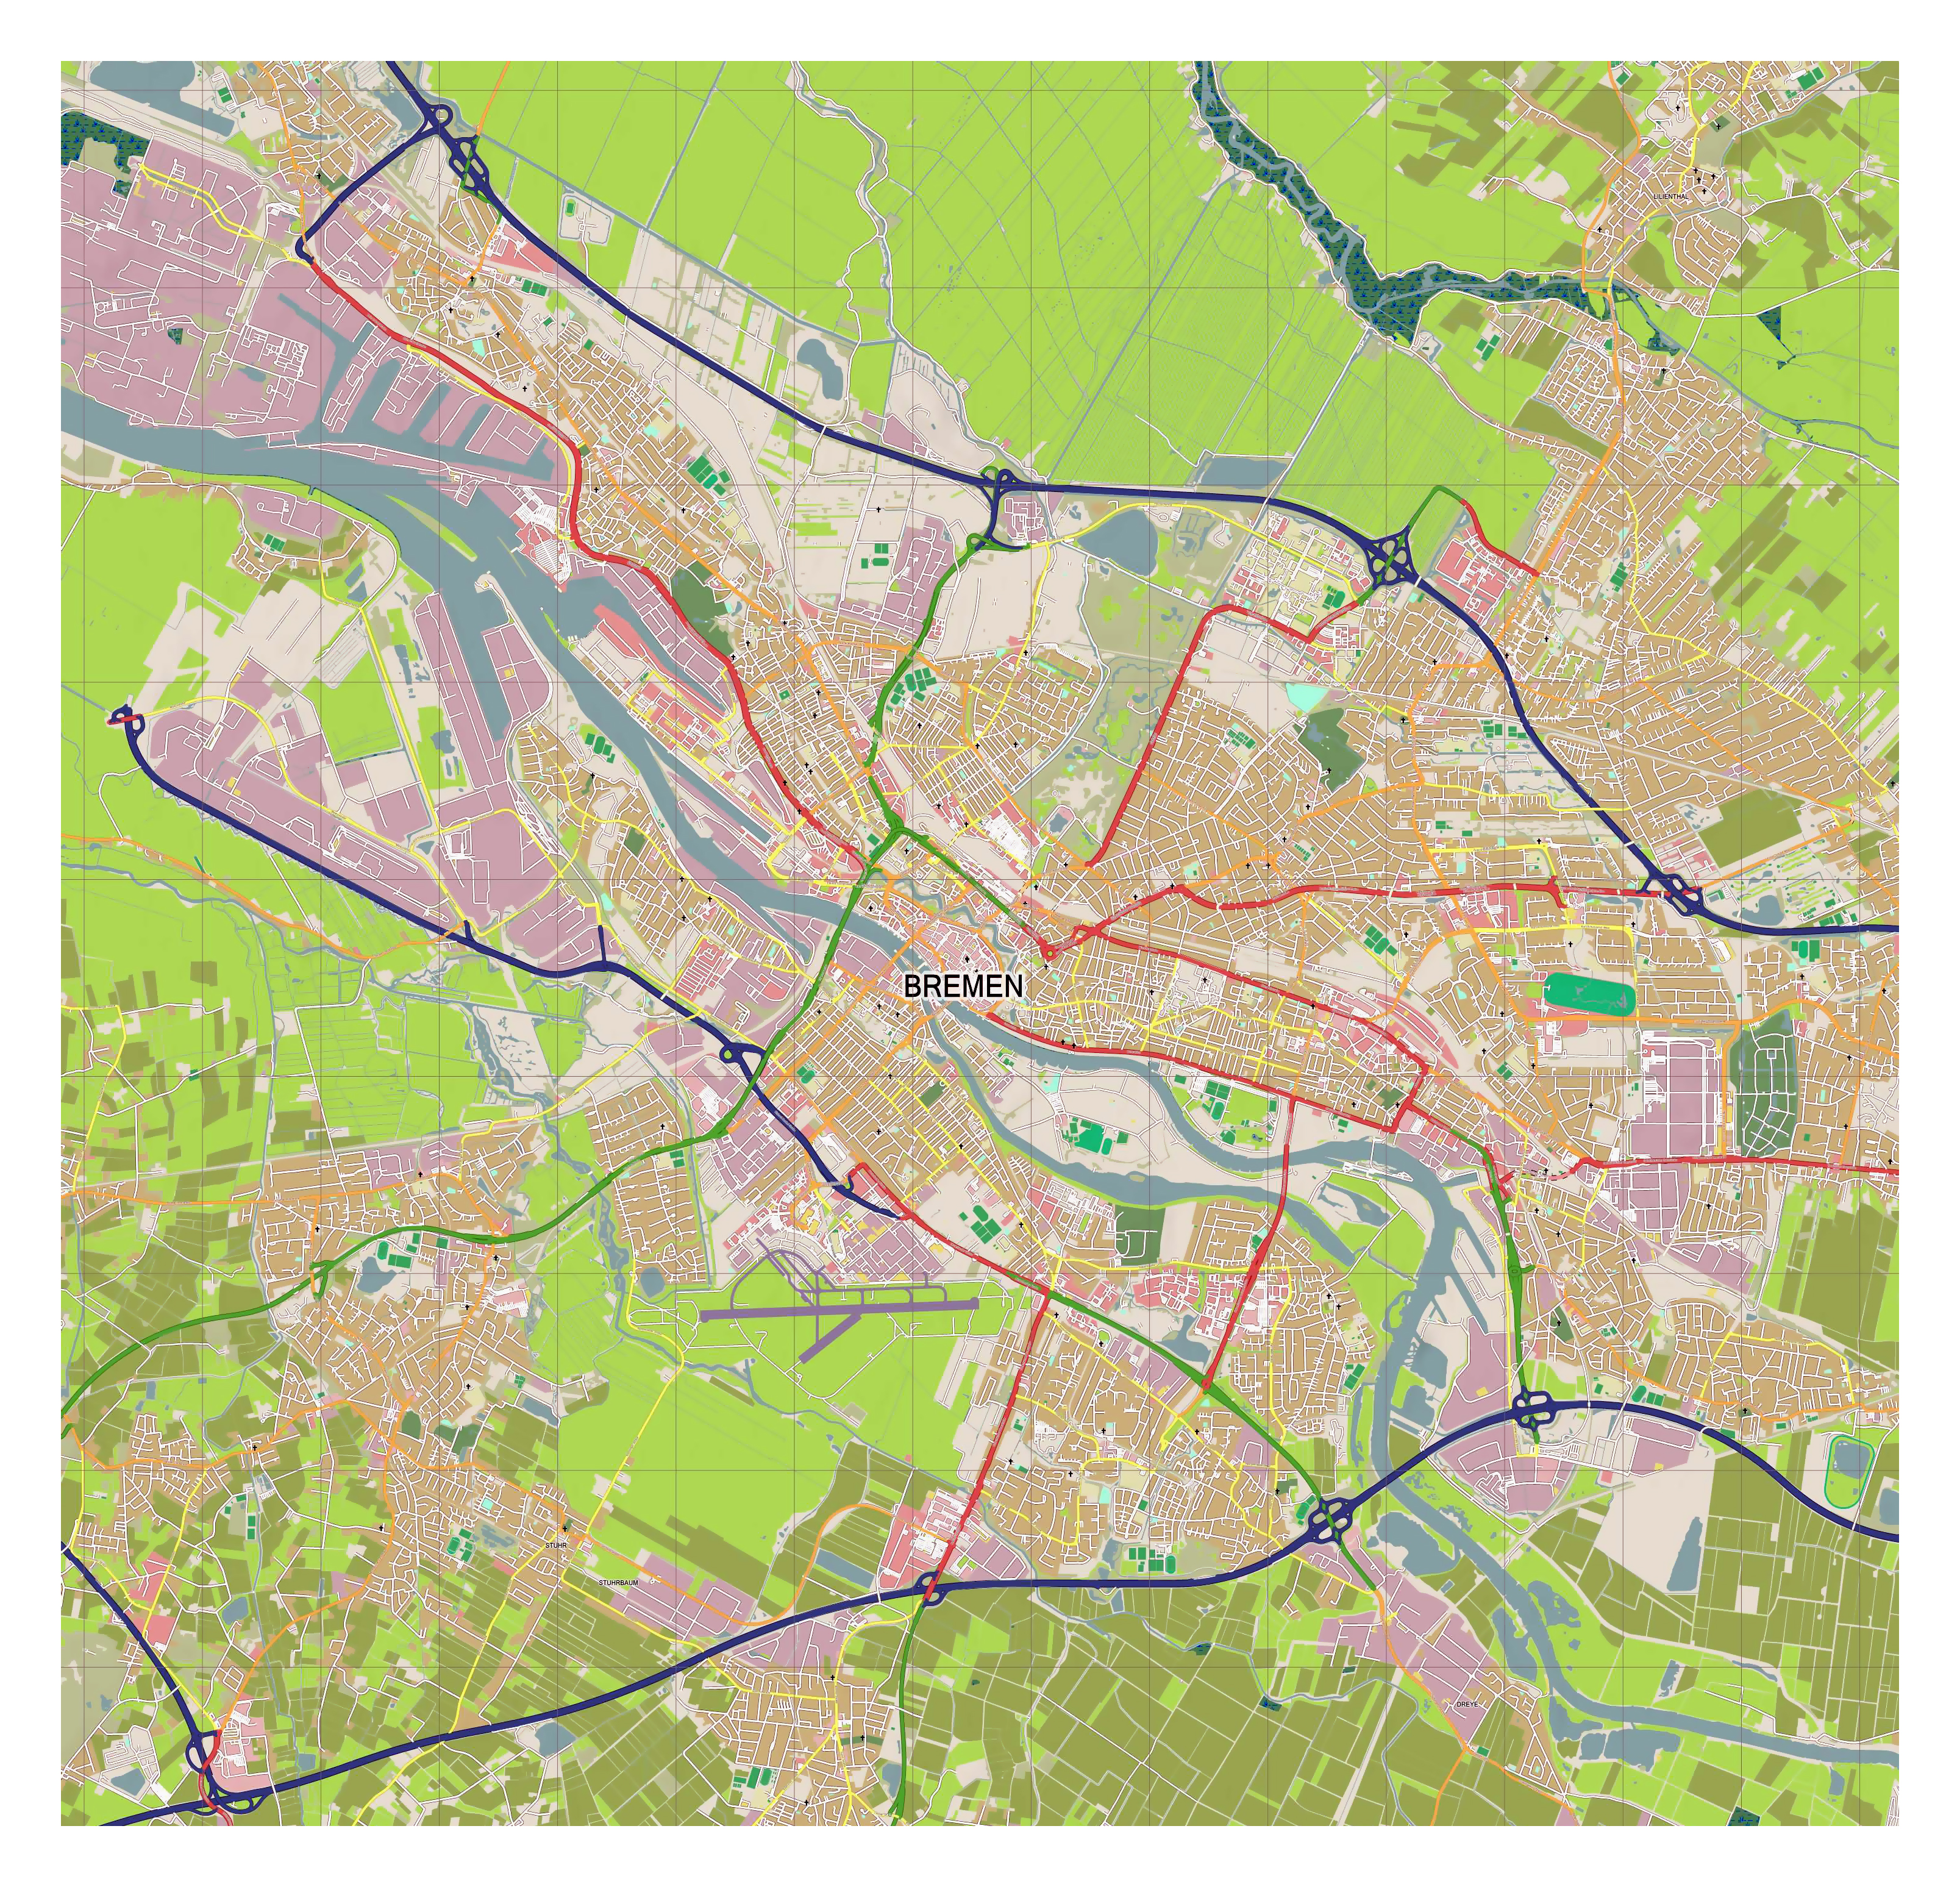 Map Of Bremen Germany.Large Detailed Map Of Bremen Bremen Germany Europe Mapsland